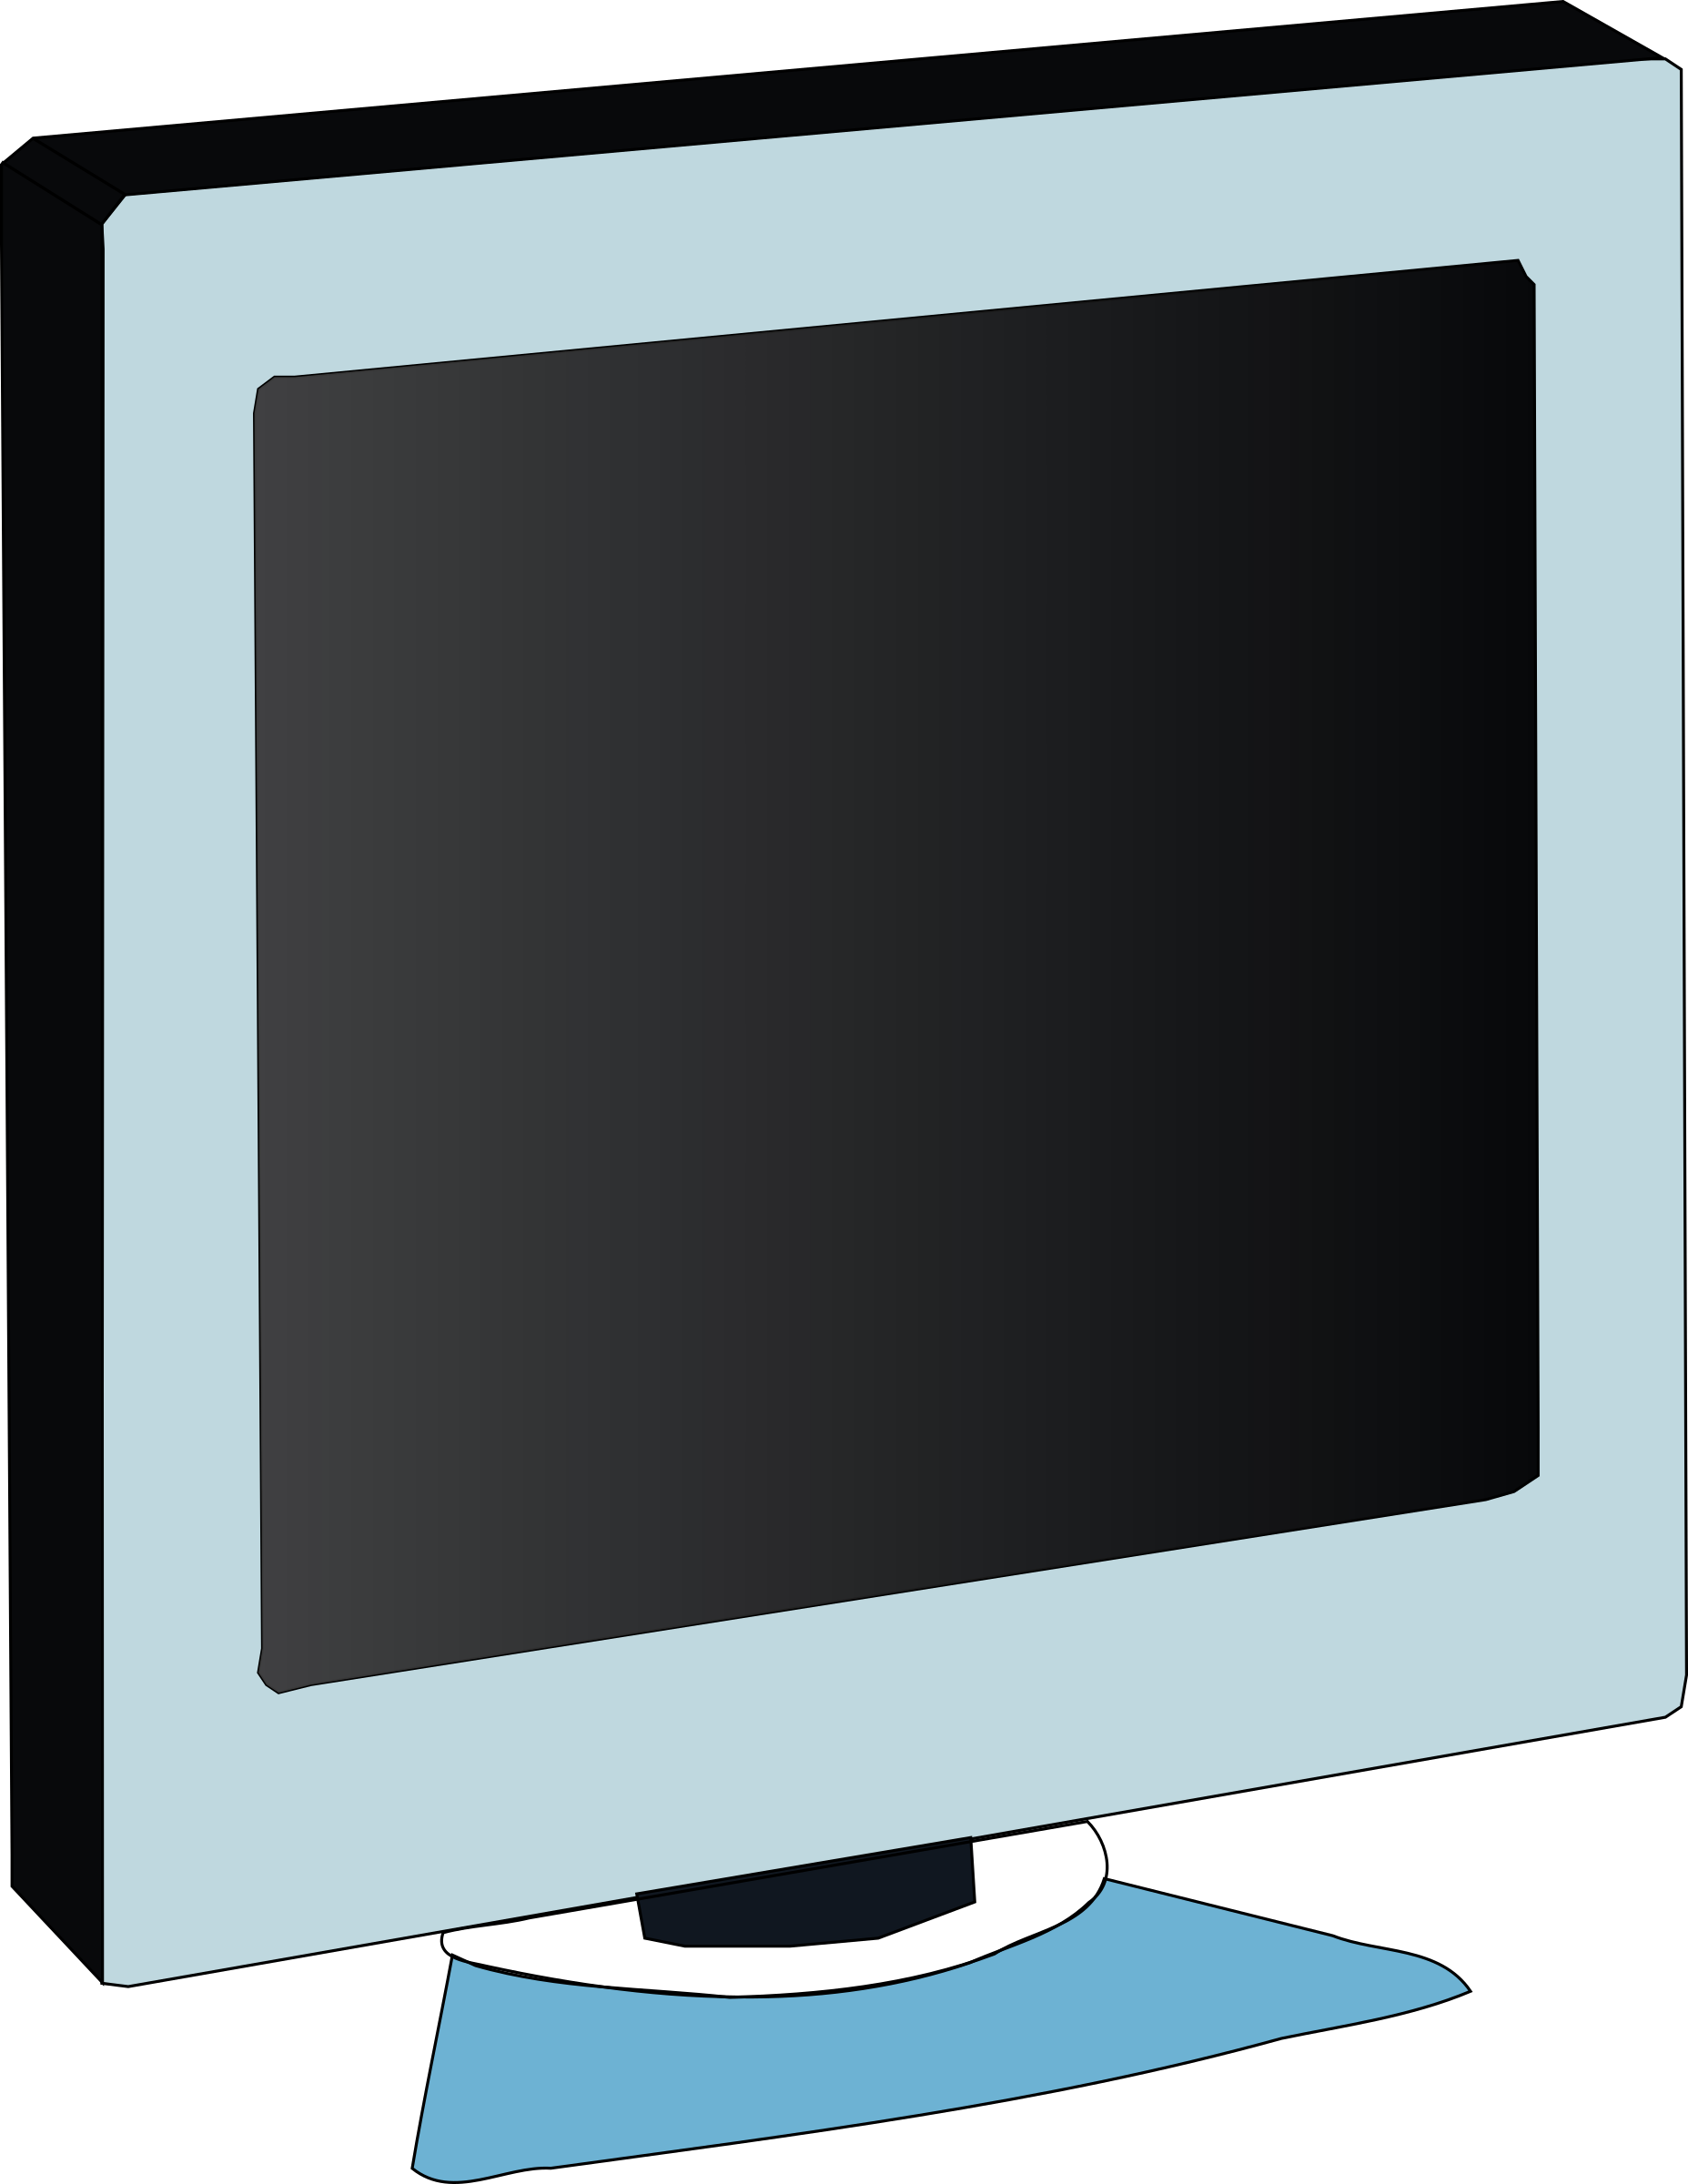 monitor LCD by Machovka